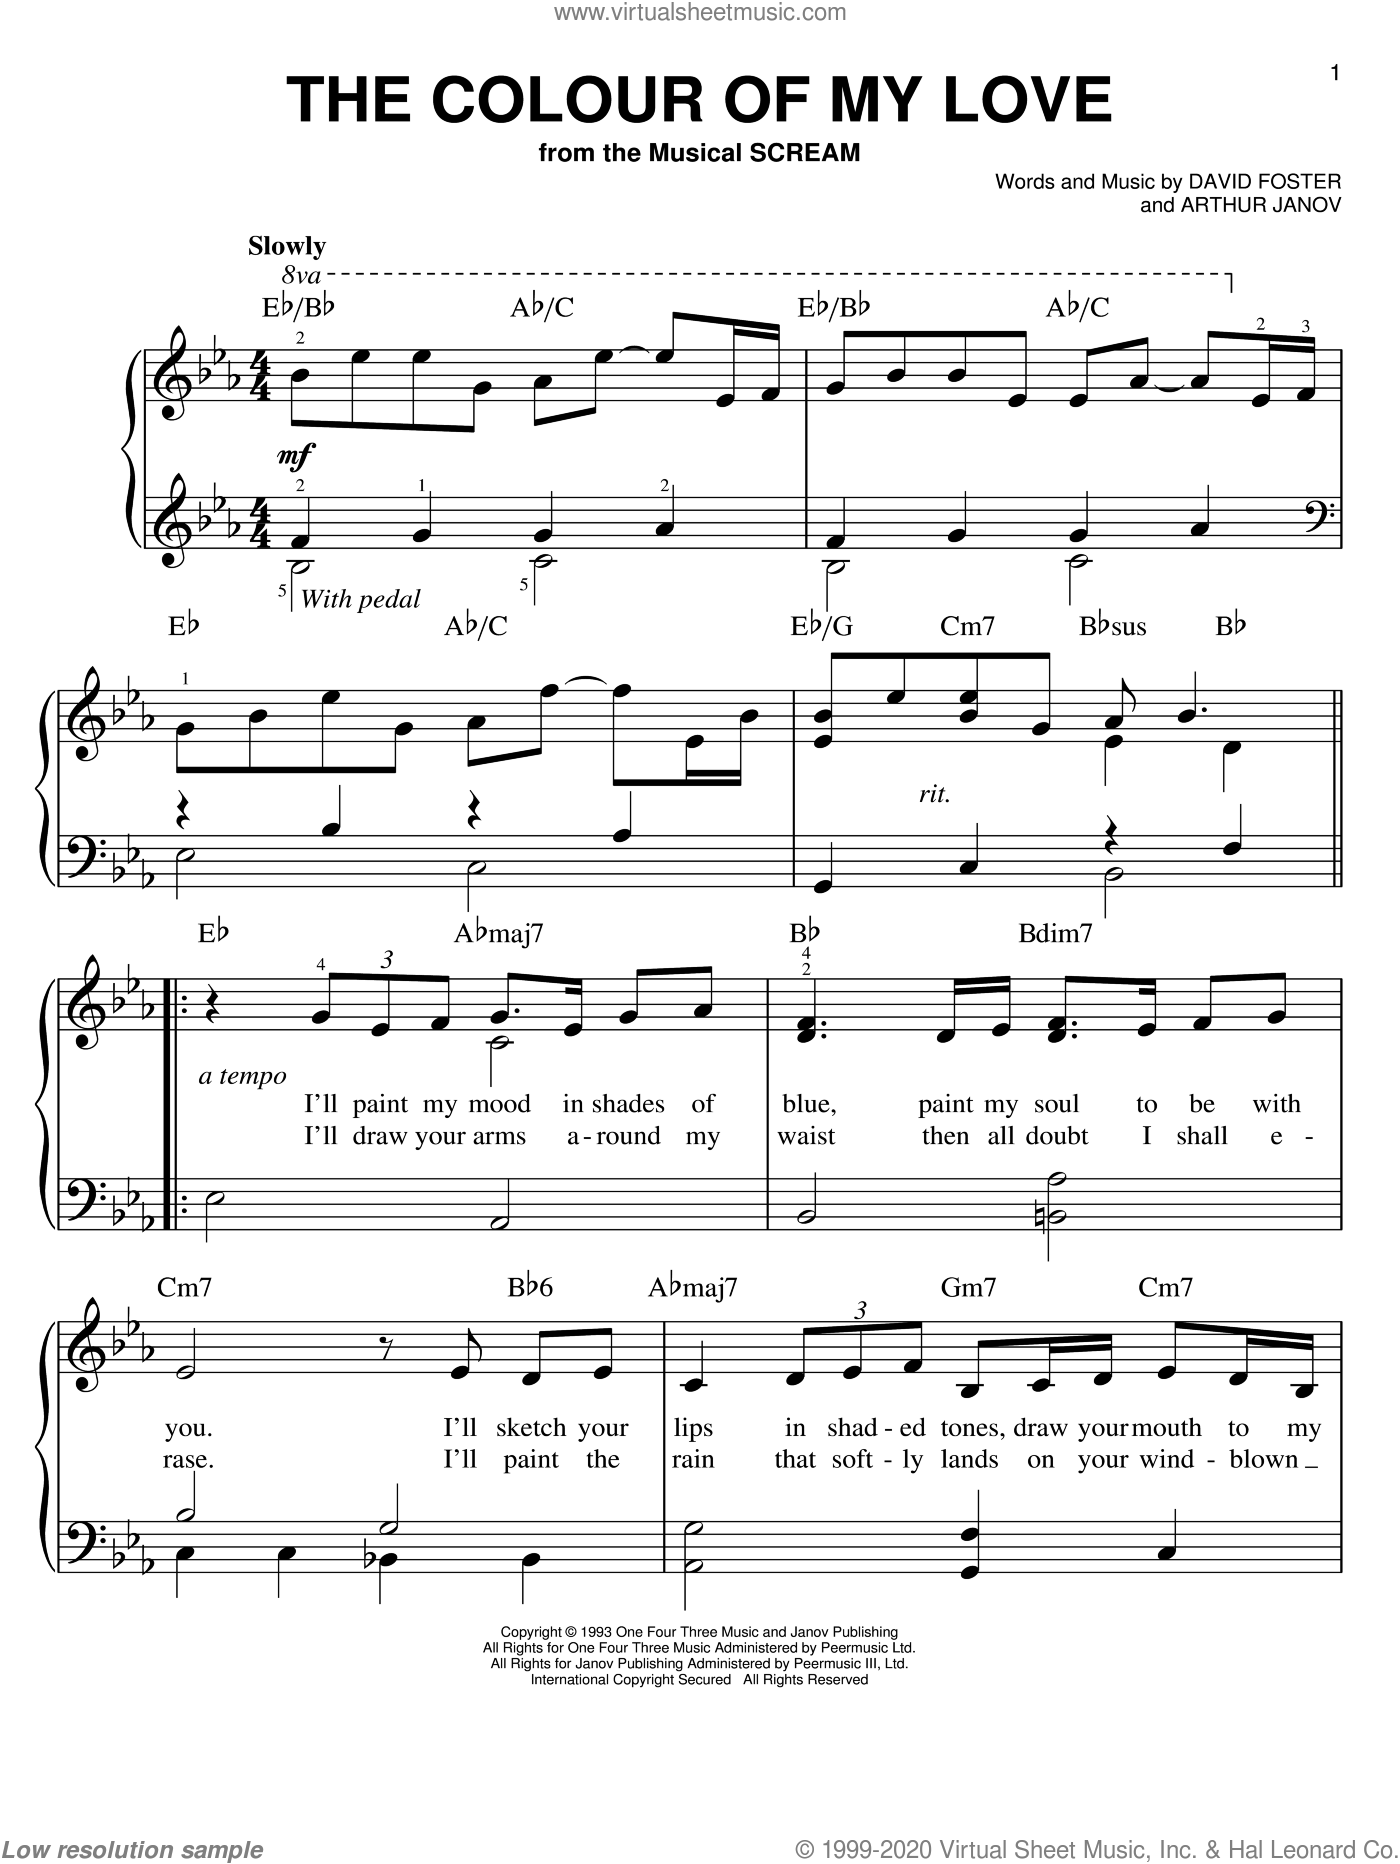 The Colour Of My Love sheet music for piano solo by Celine Dion, Arthur Janov and David Foster, easy skill level